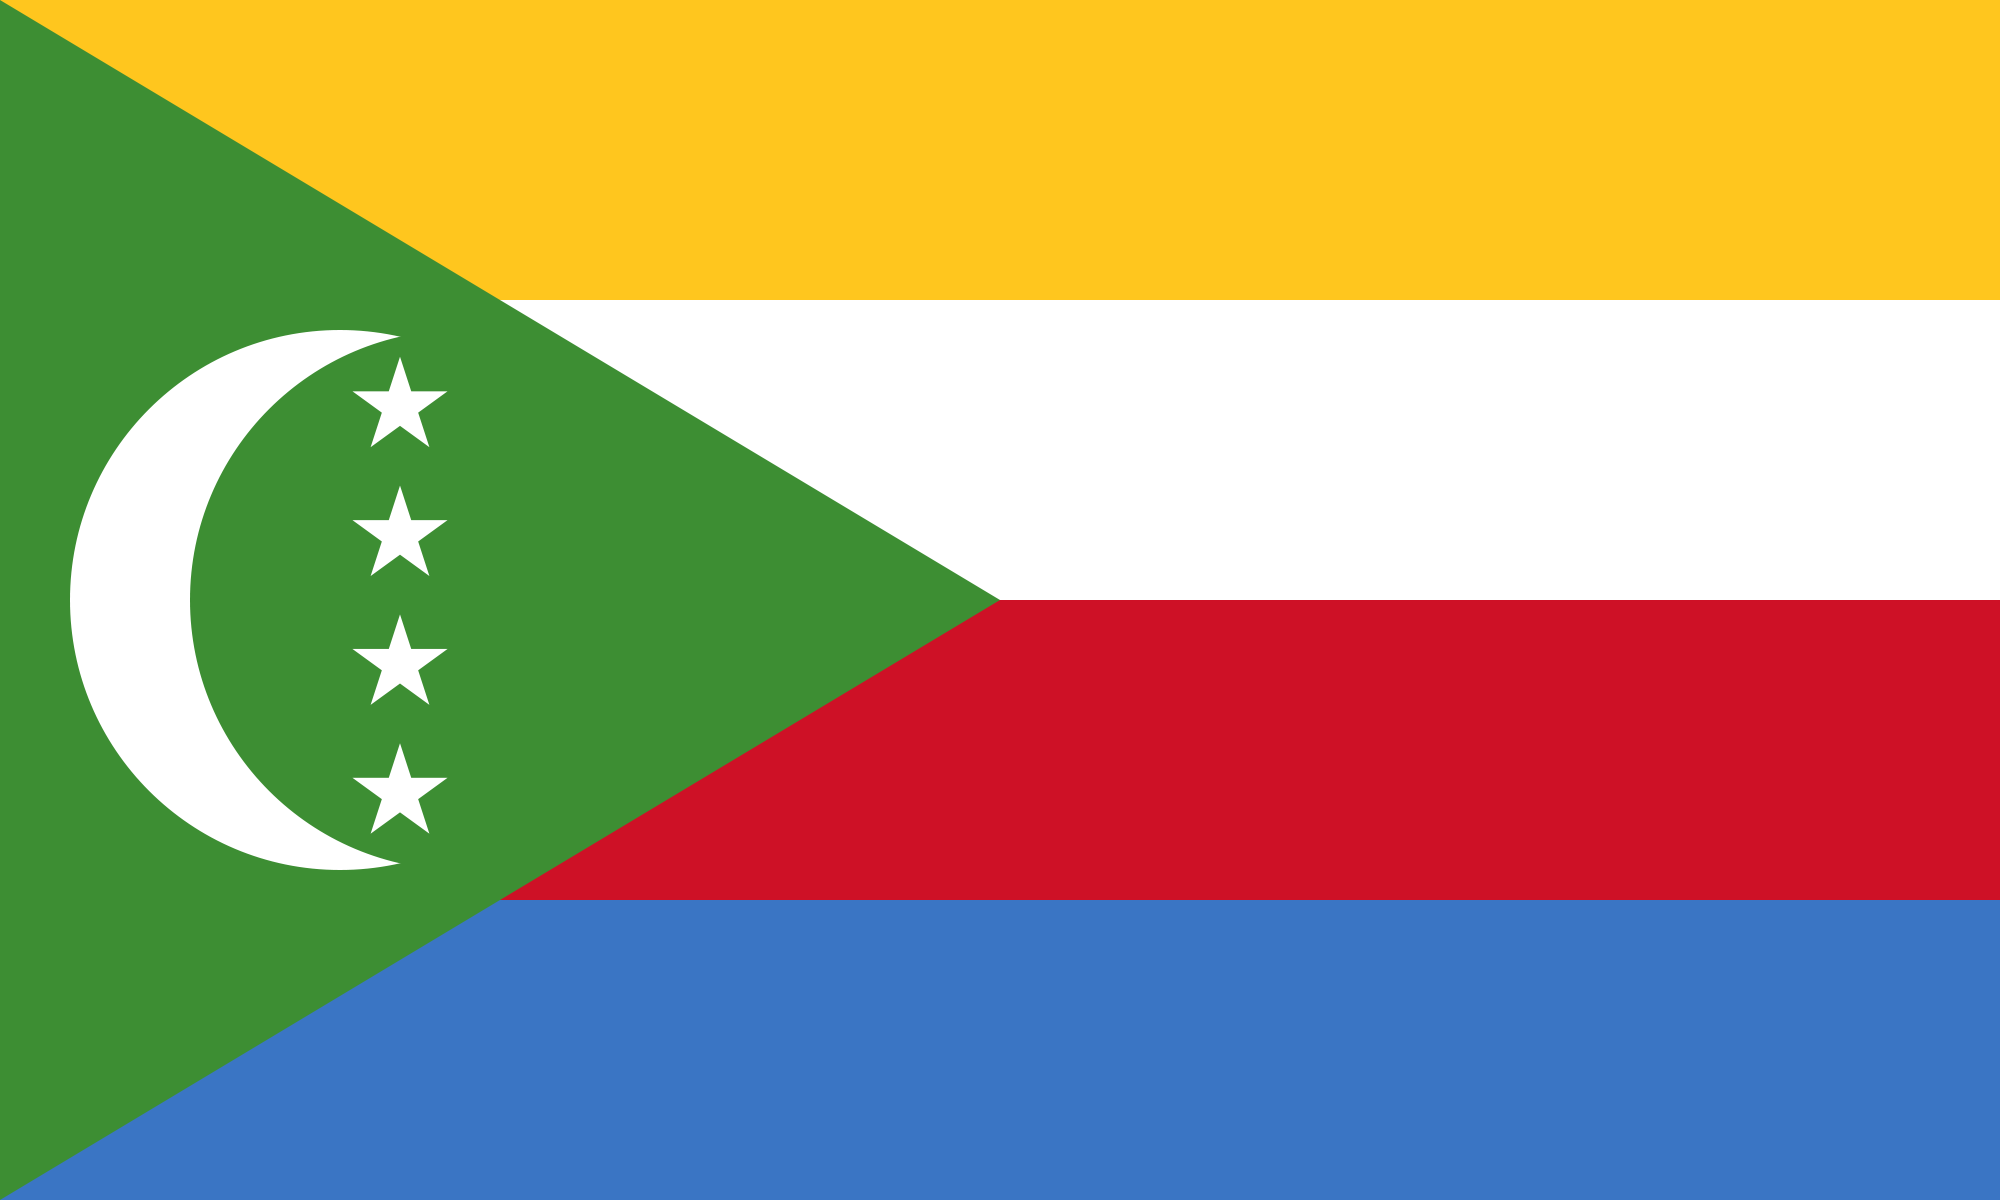 Flag Of Comoros In HD For Free Download COMOROS